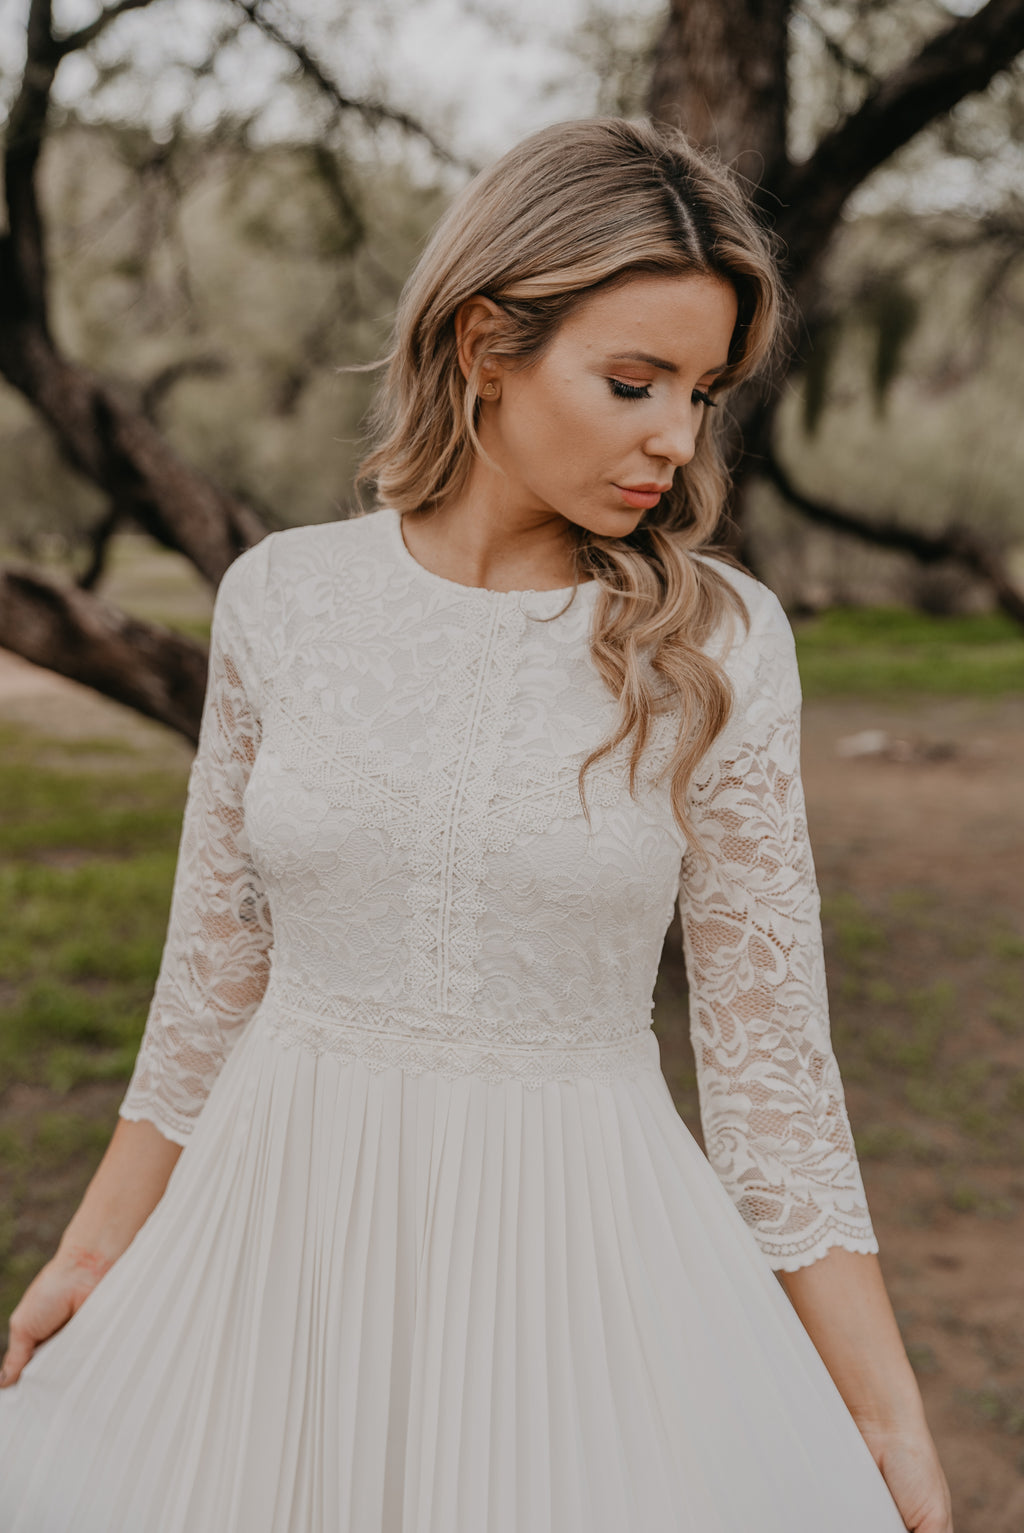 The Belmont Lace Dress in Ivory